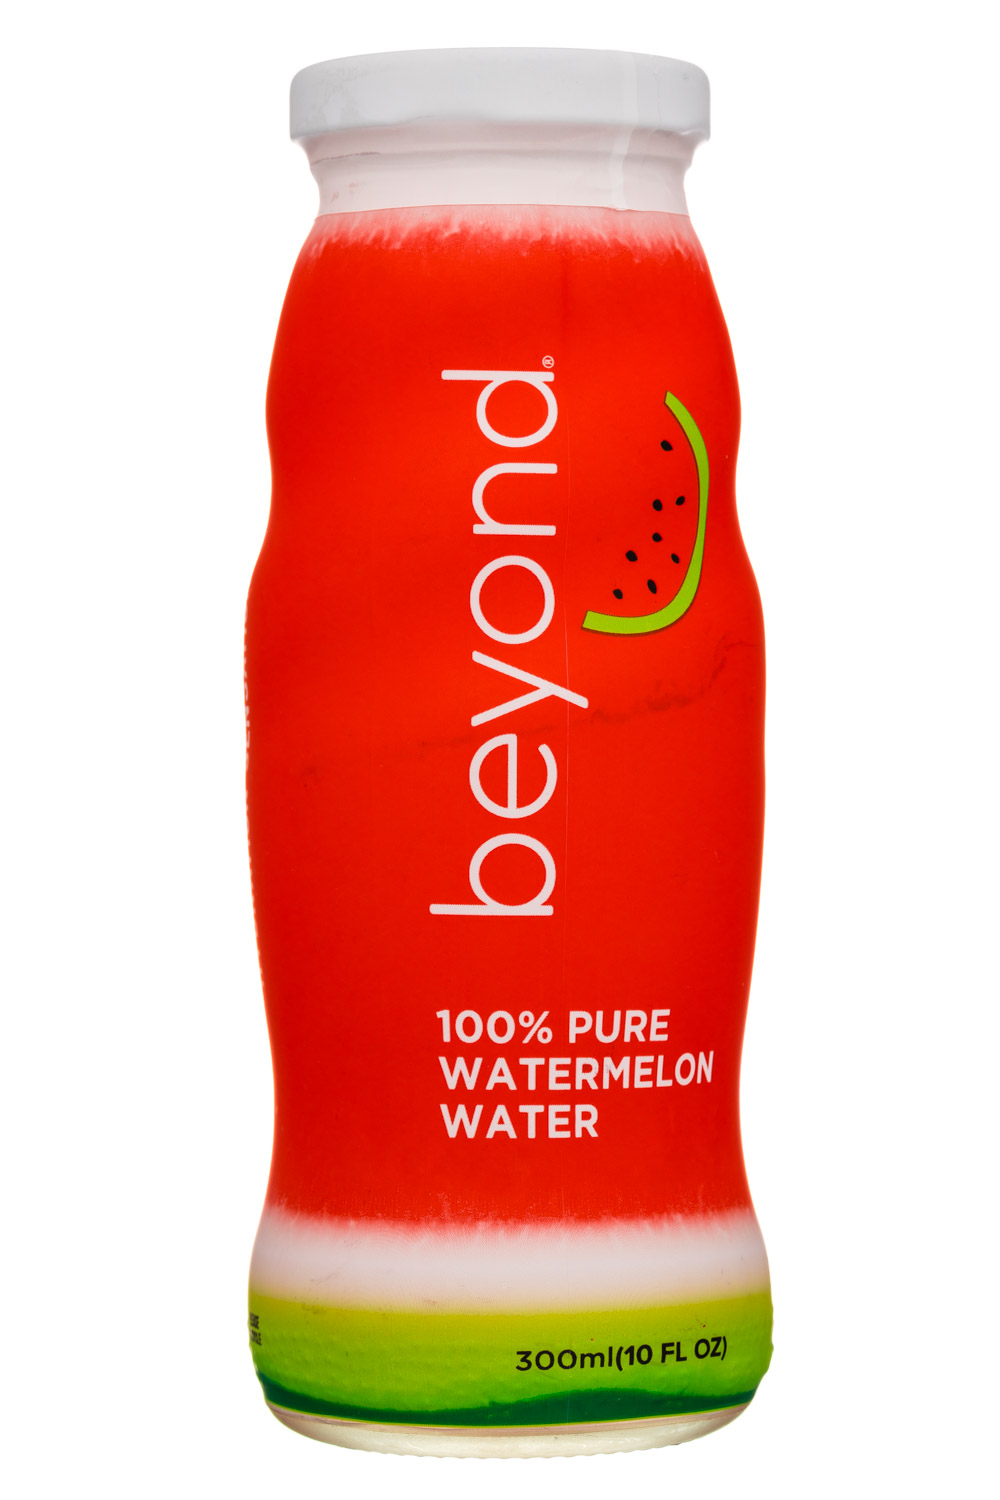 100% Pure Watermelon Water